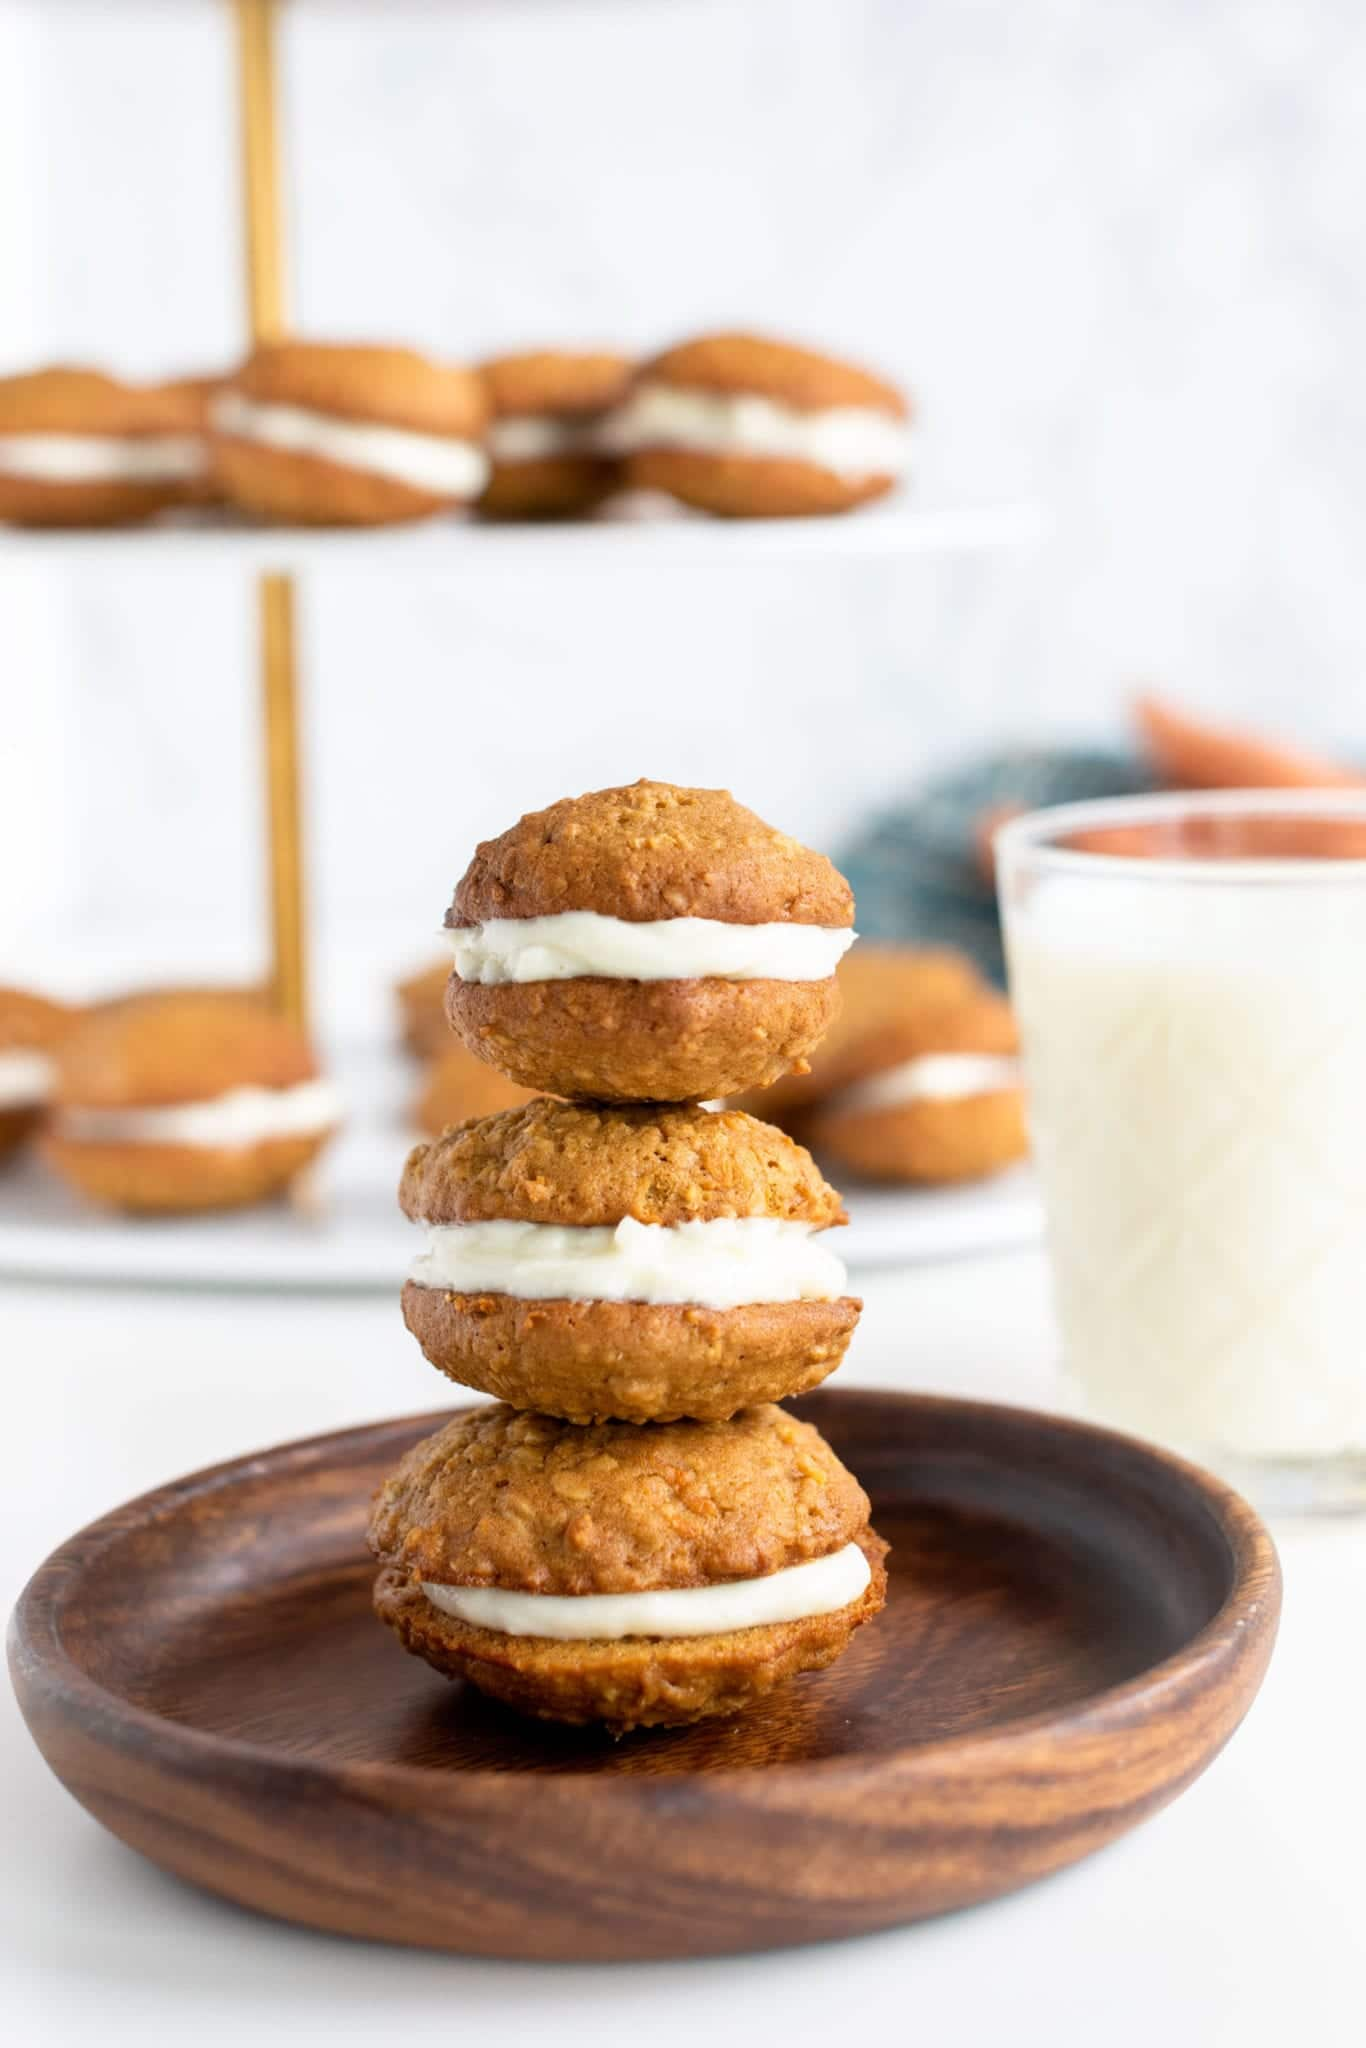 three cookie sandwiches stacked on top of each other on wooden plate served with milk with tiered display filled with cookie sandwiches in the background